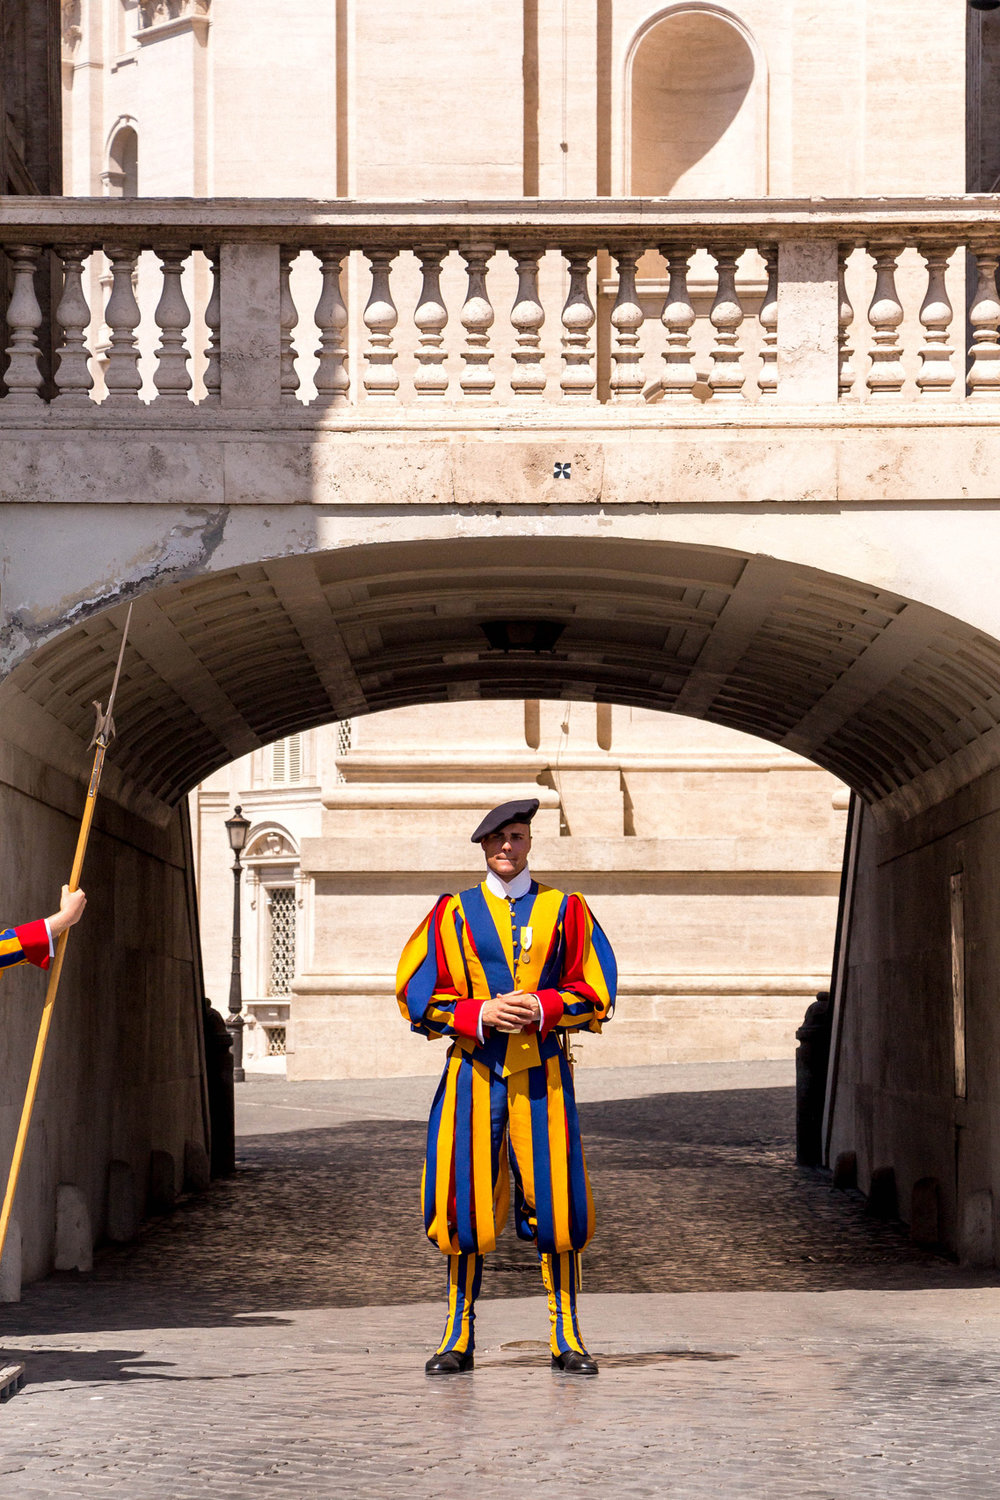 Pontifical Swiss Guard, Vatican